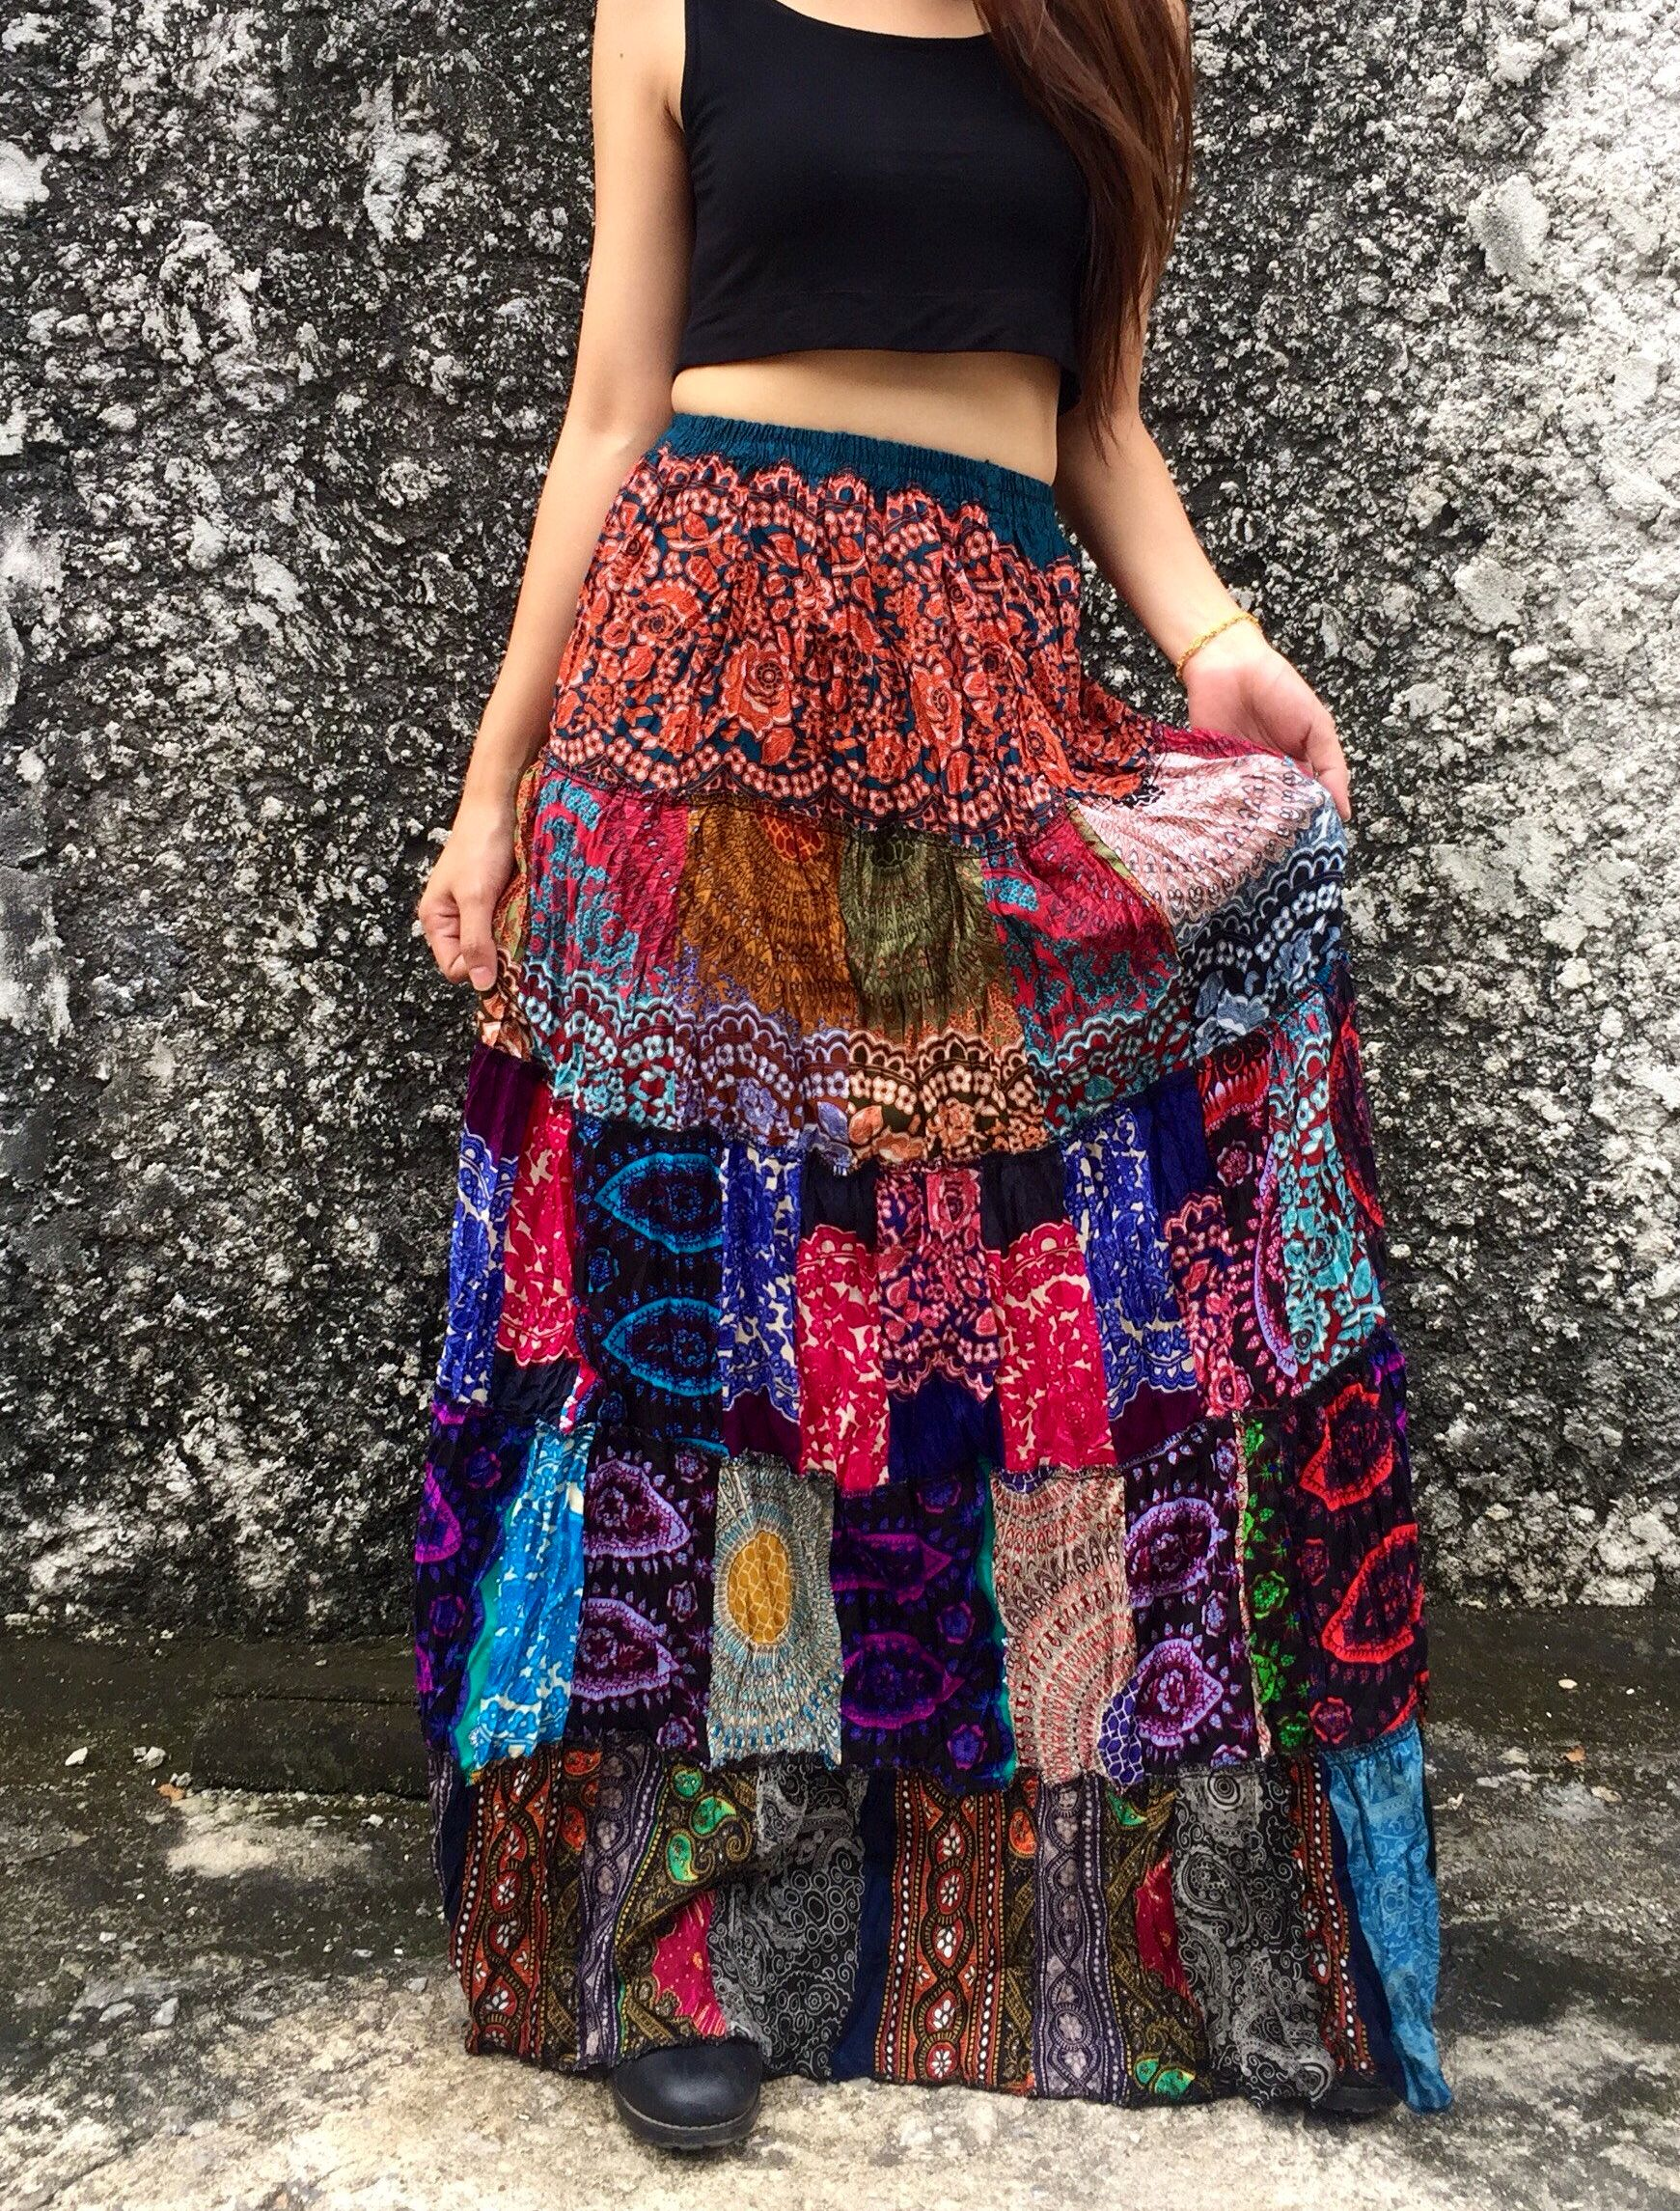 f641aa2b24f 20  Patchwork Maxi Skirt Bandeau Dress Elephant Hippie Vegan Boho chic  bohemian style Beach Festival Clothing unique gift for girl women